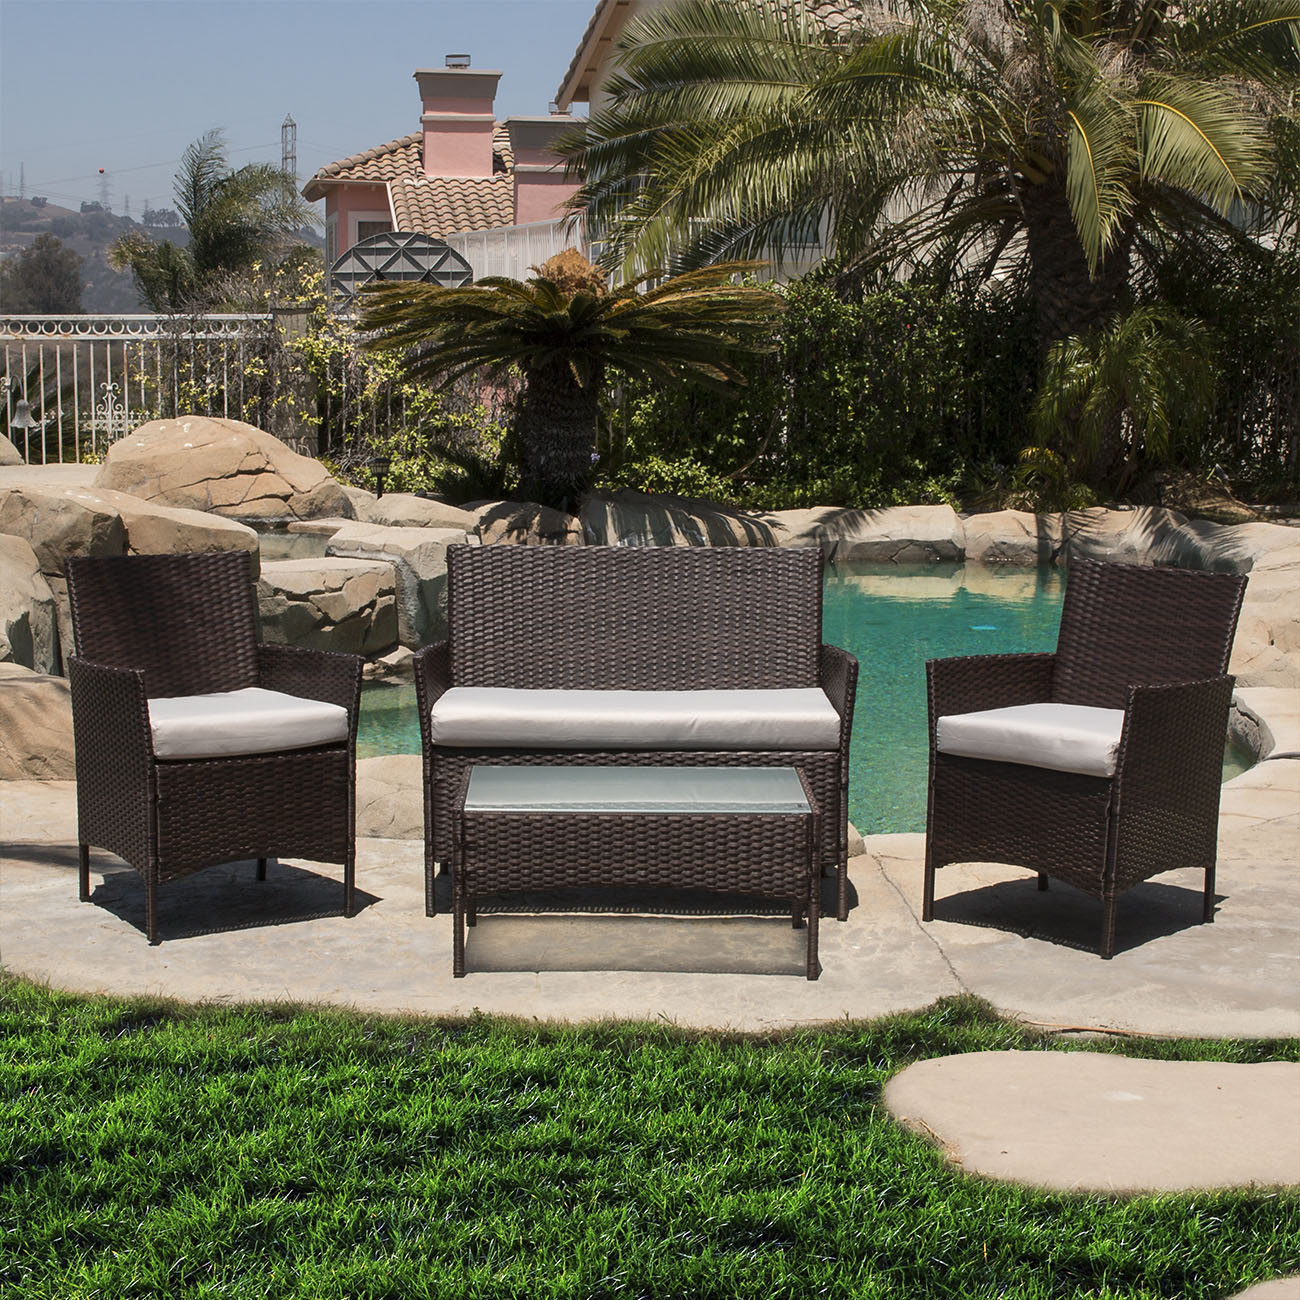 4 pc rattan furniture set outdoor patio garden sectional for Outdoor patio couch set